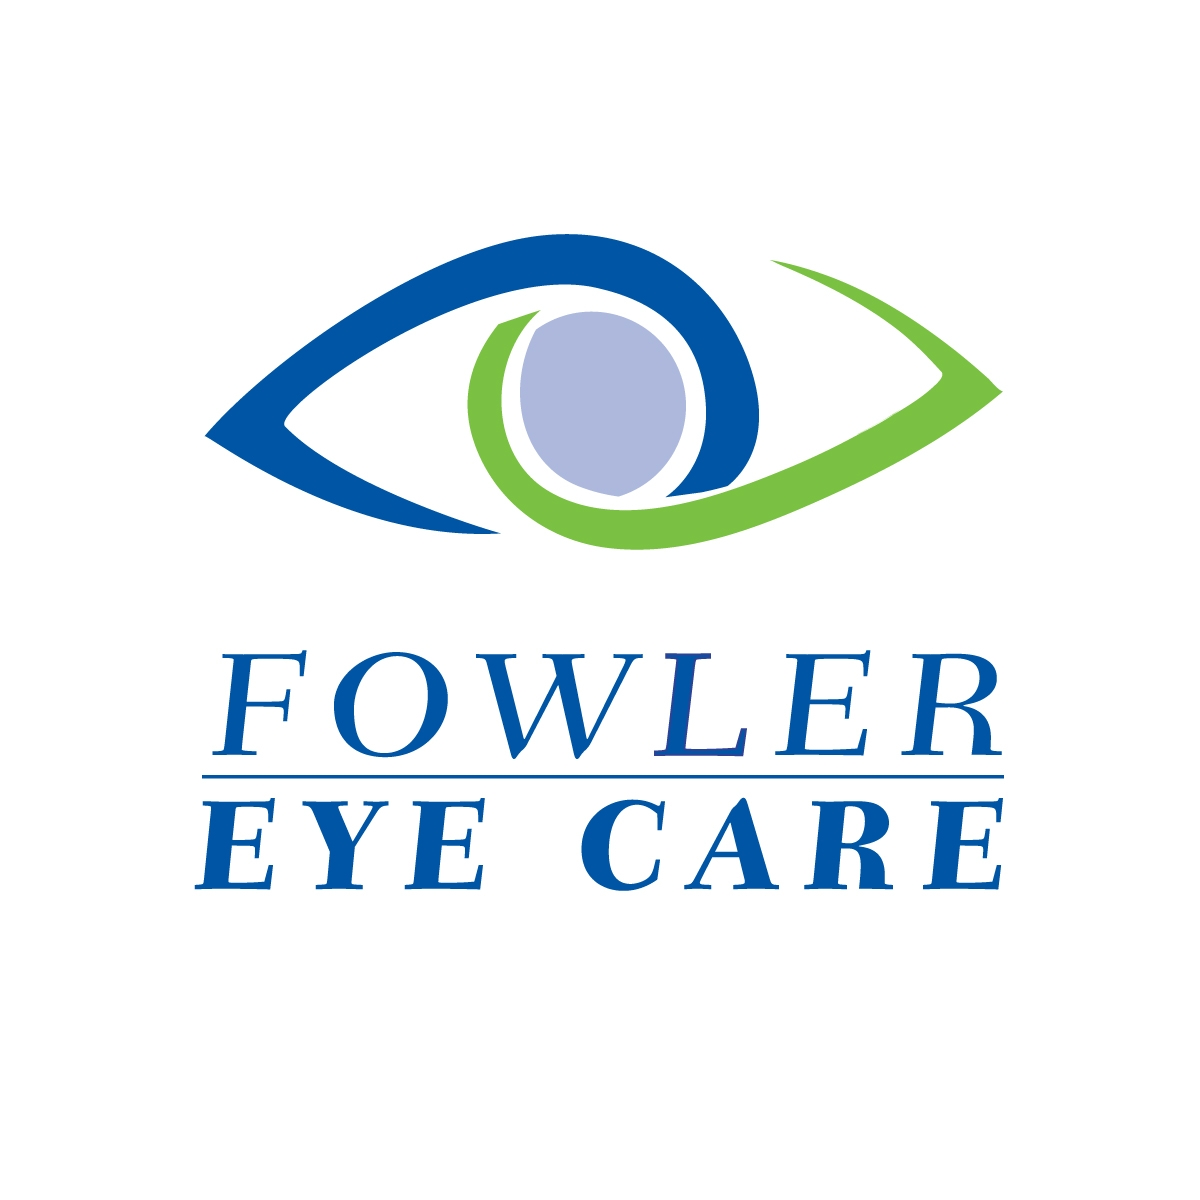 Fowler Eye Care image 6